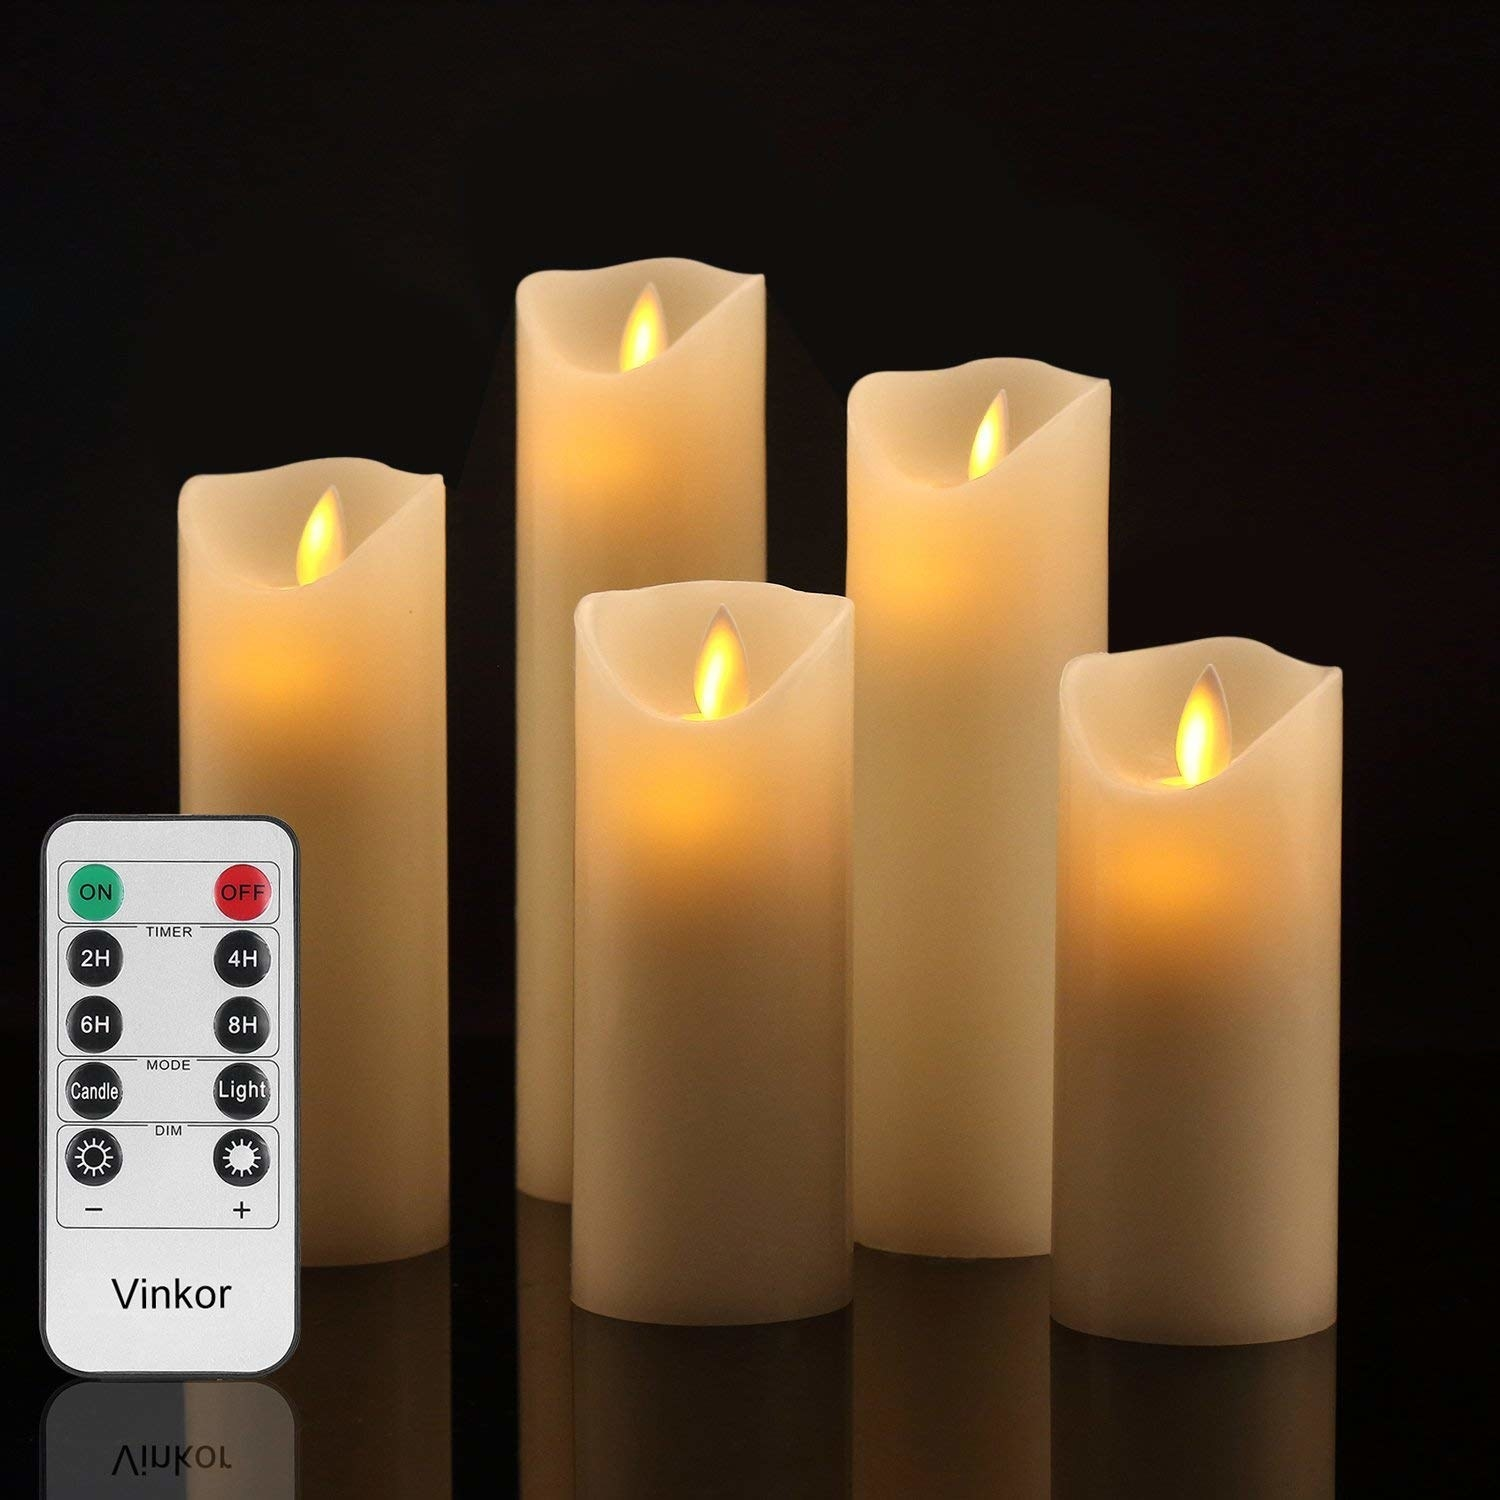 The five different height candles and remote